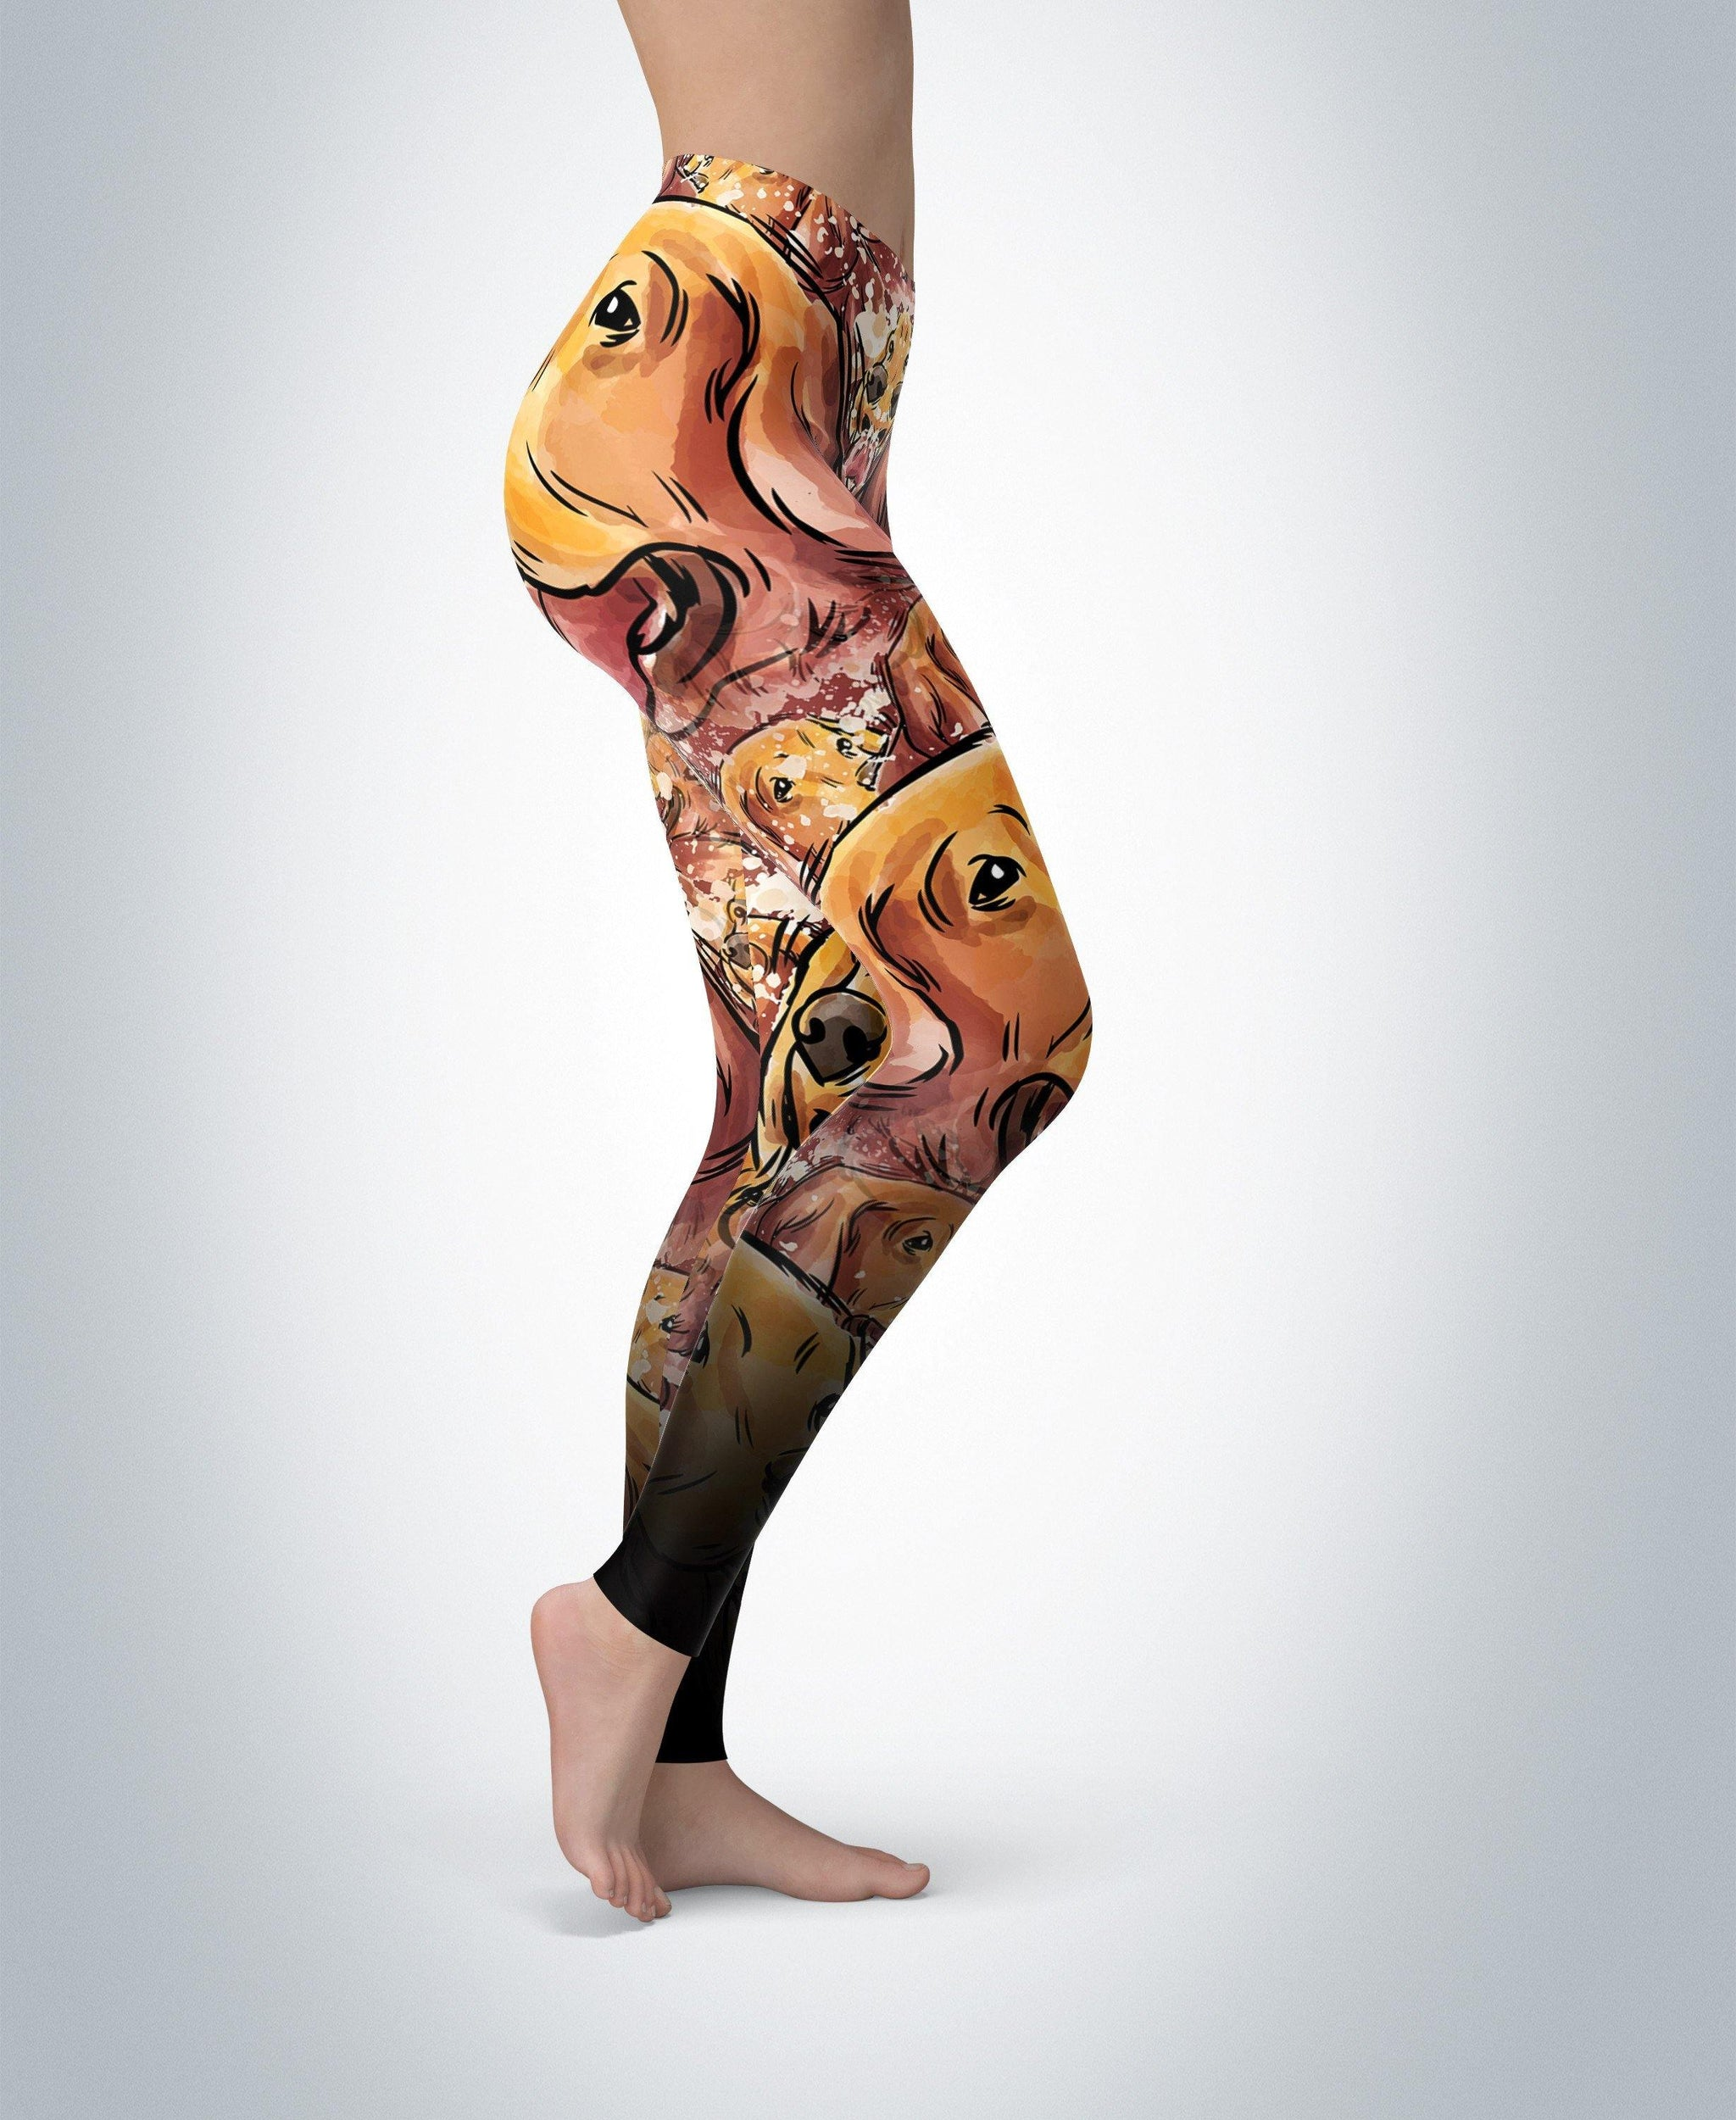 fb1806dc6c797 Buy Golden Retriever Leggings: Leggings | Leggings